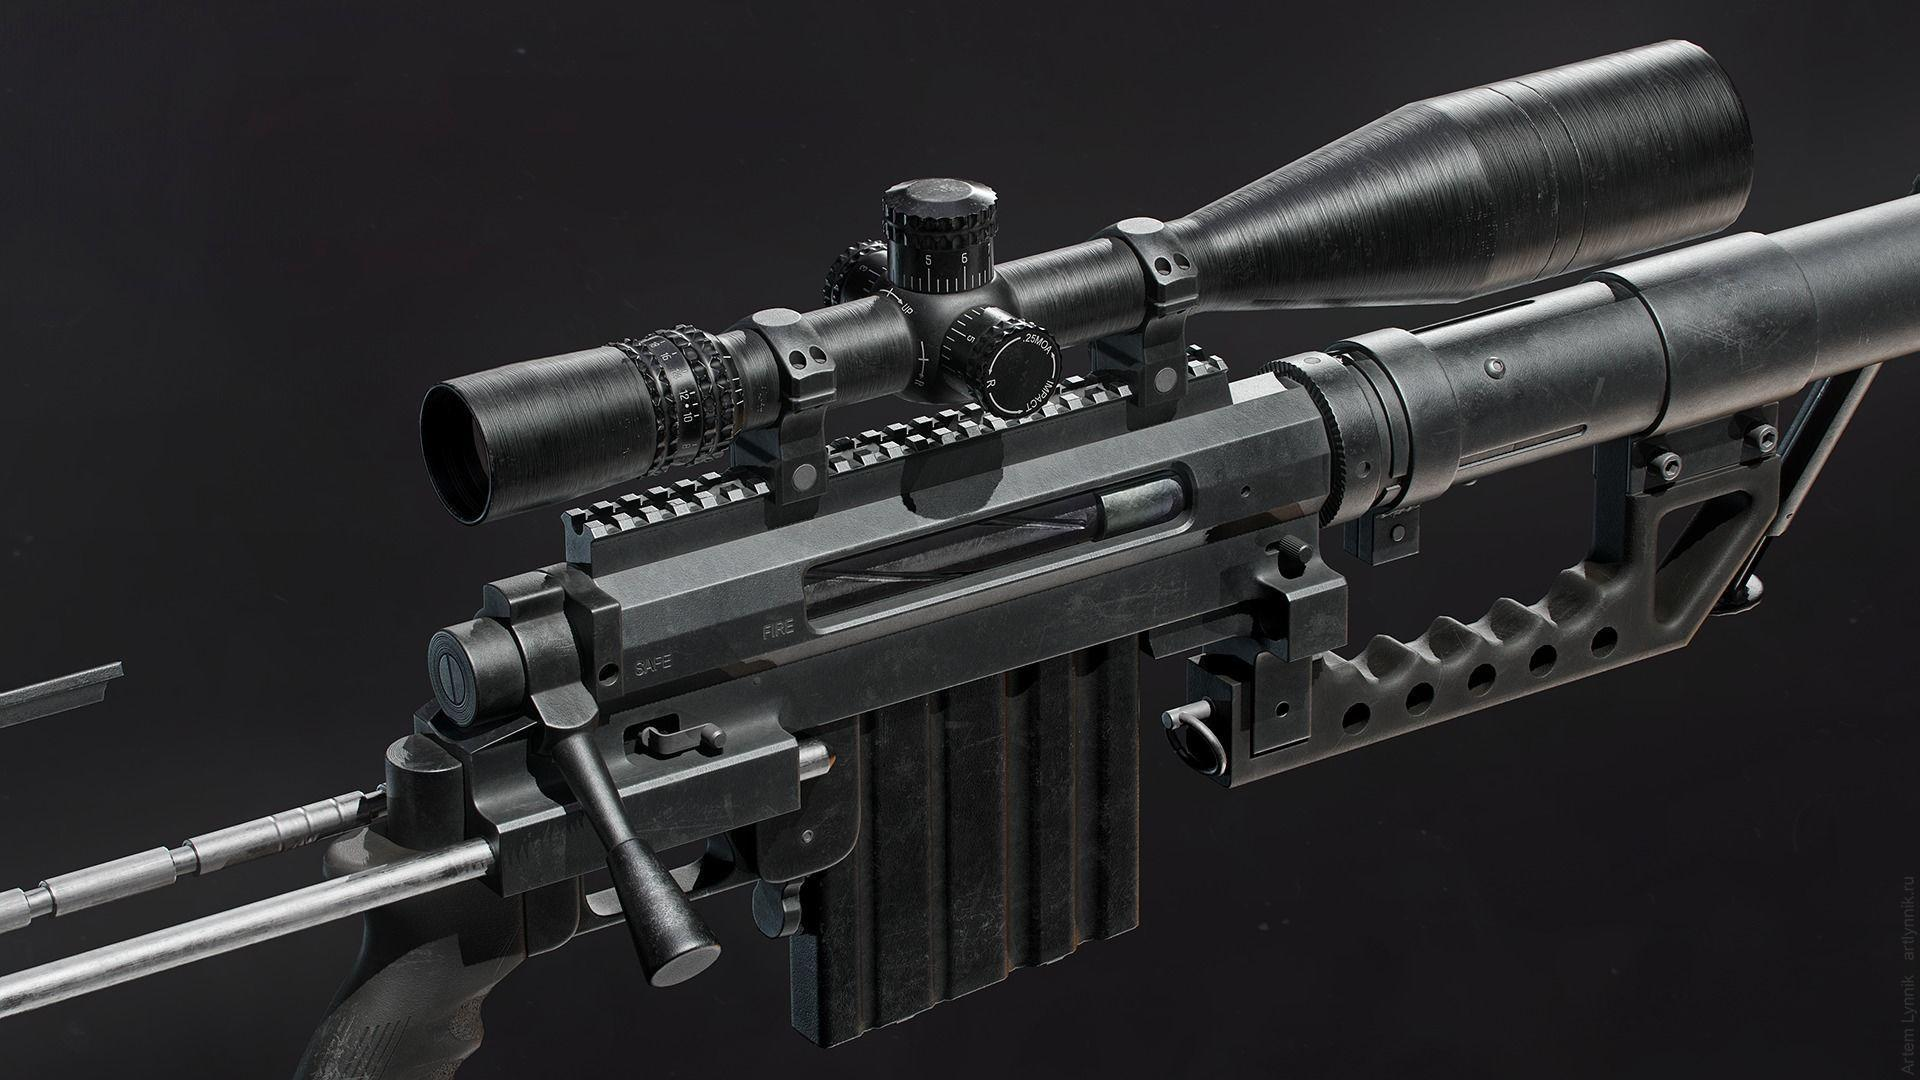 Intervention Sniper Rifle Wallpapers - Wallpaper Cave